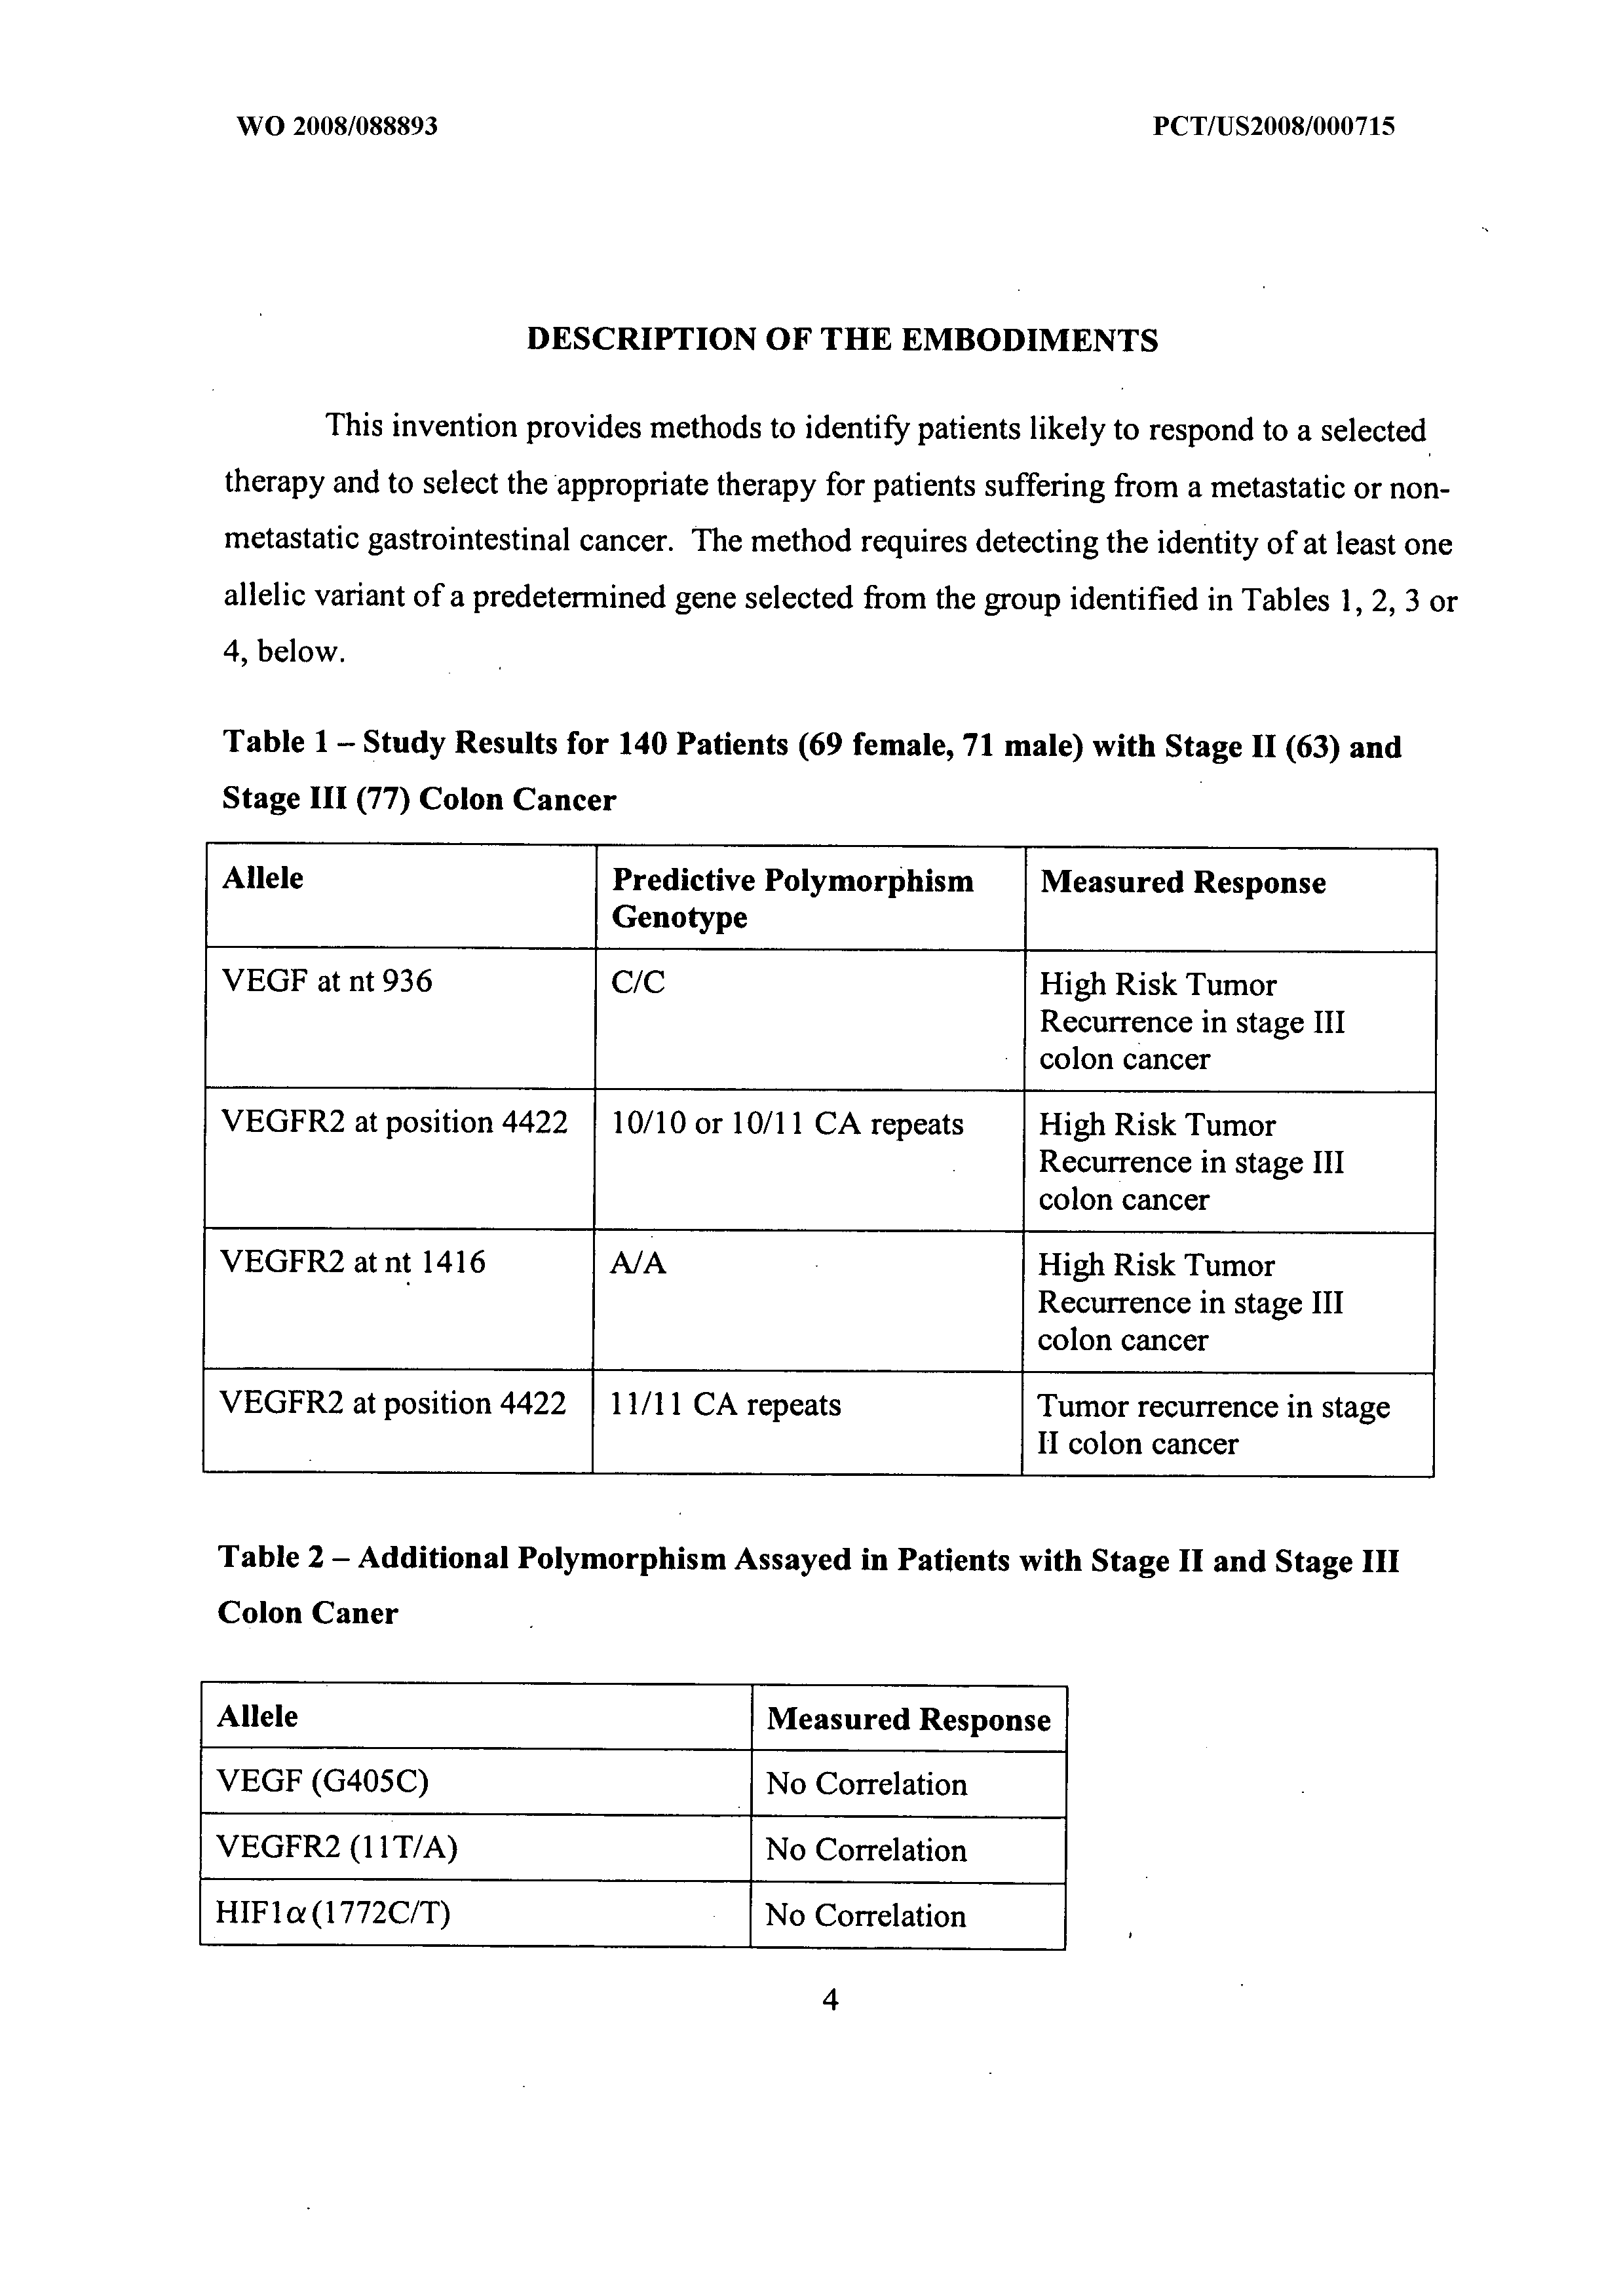 WO 2008/088893 A2 - Gene Polymorphisms In Vegf And Vegf Receptor 2